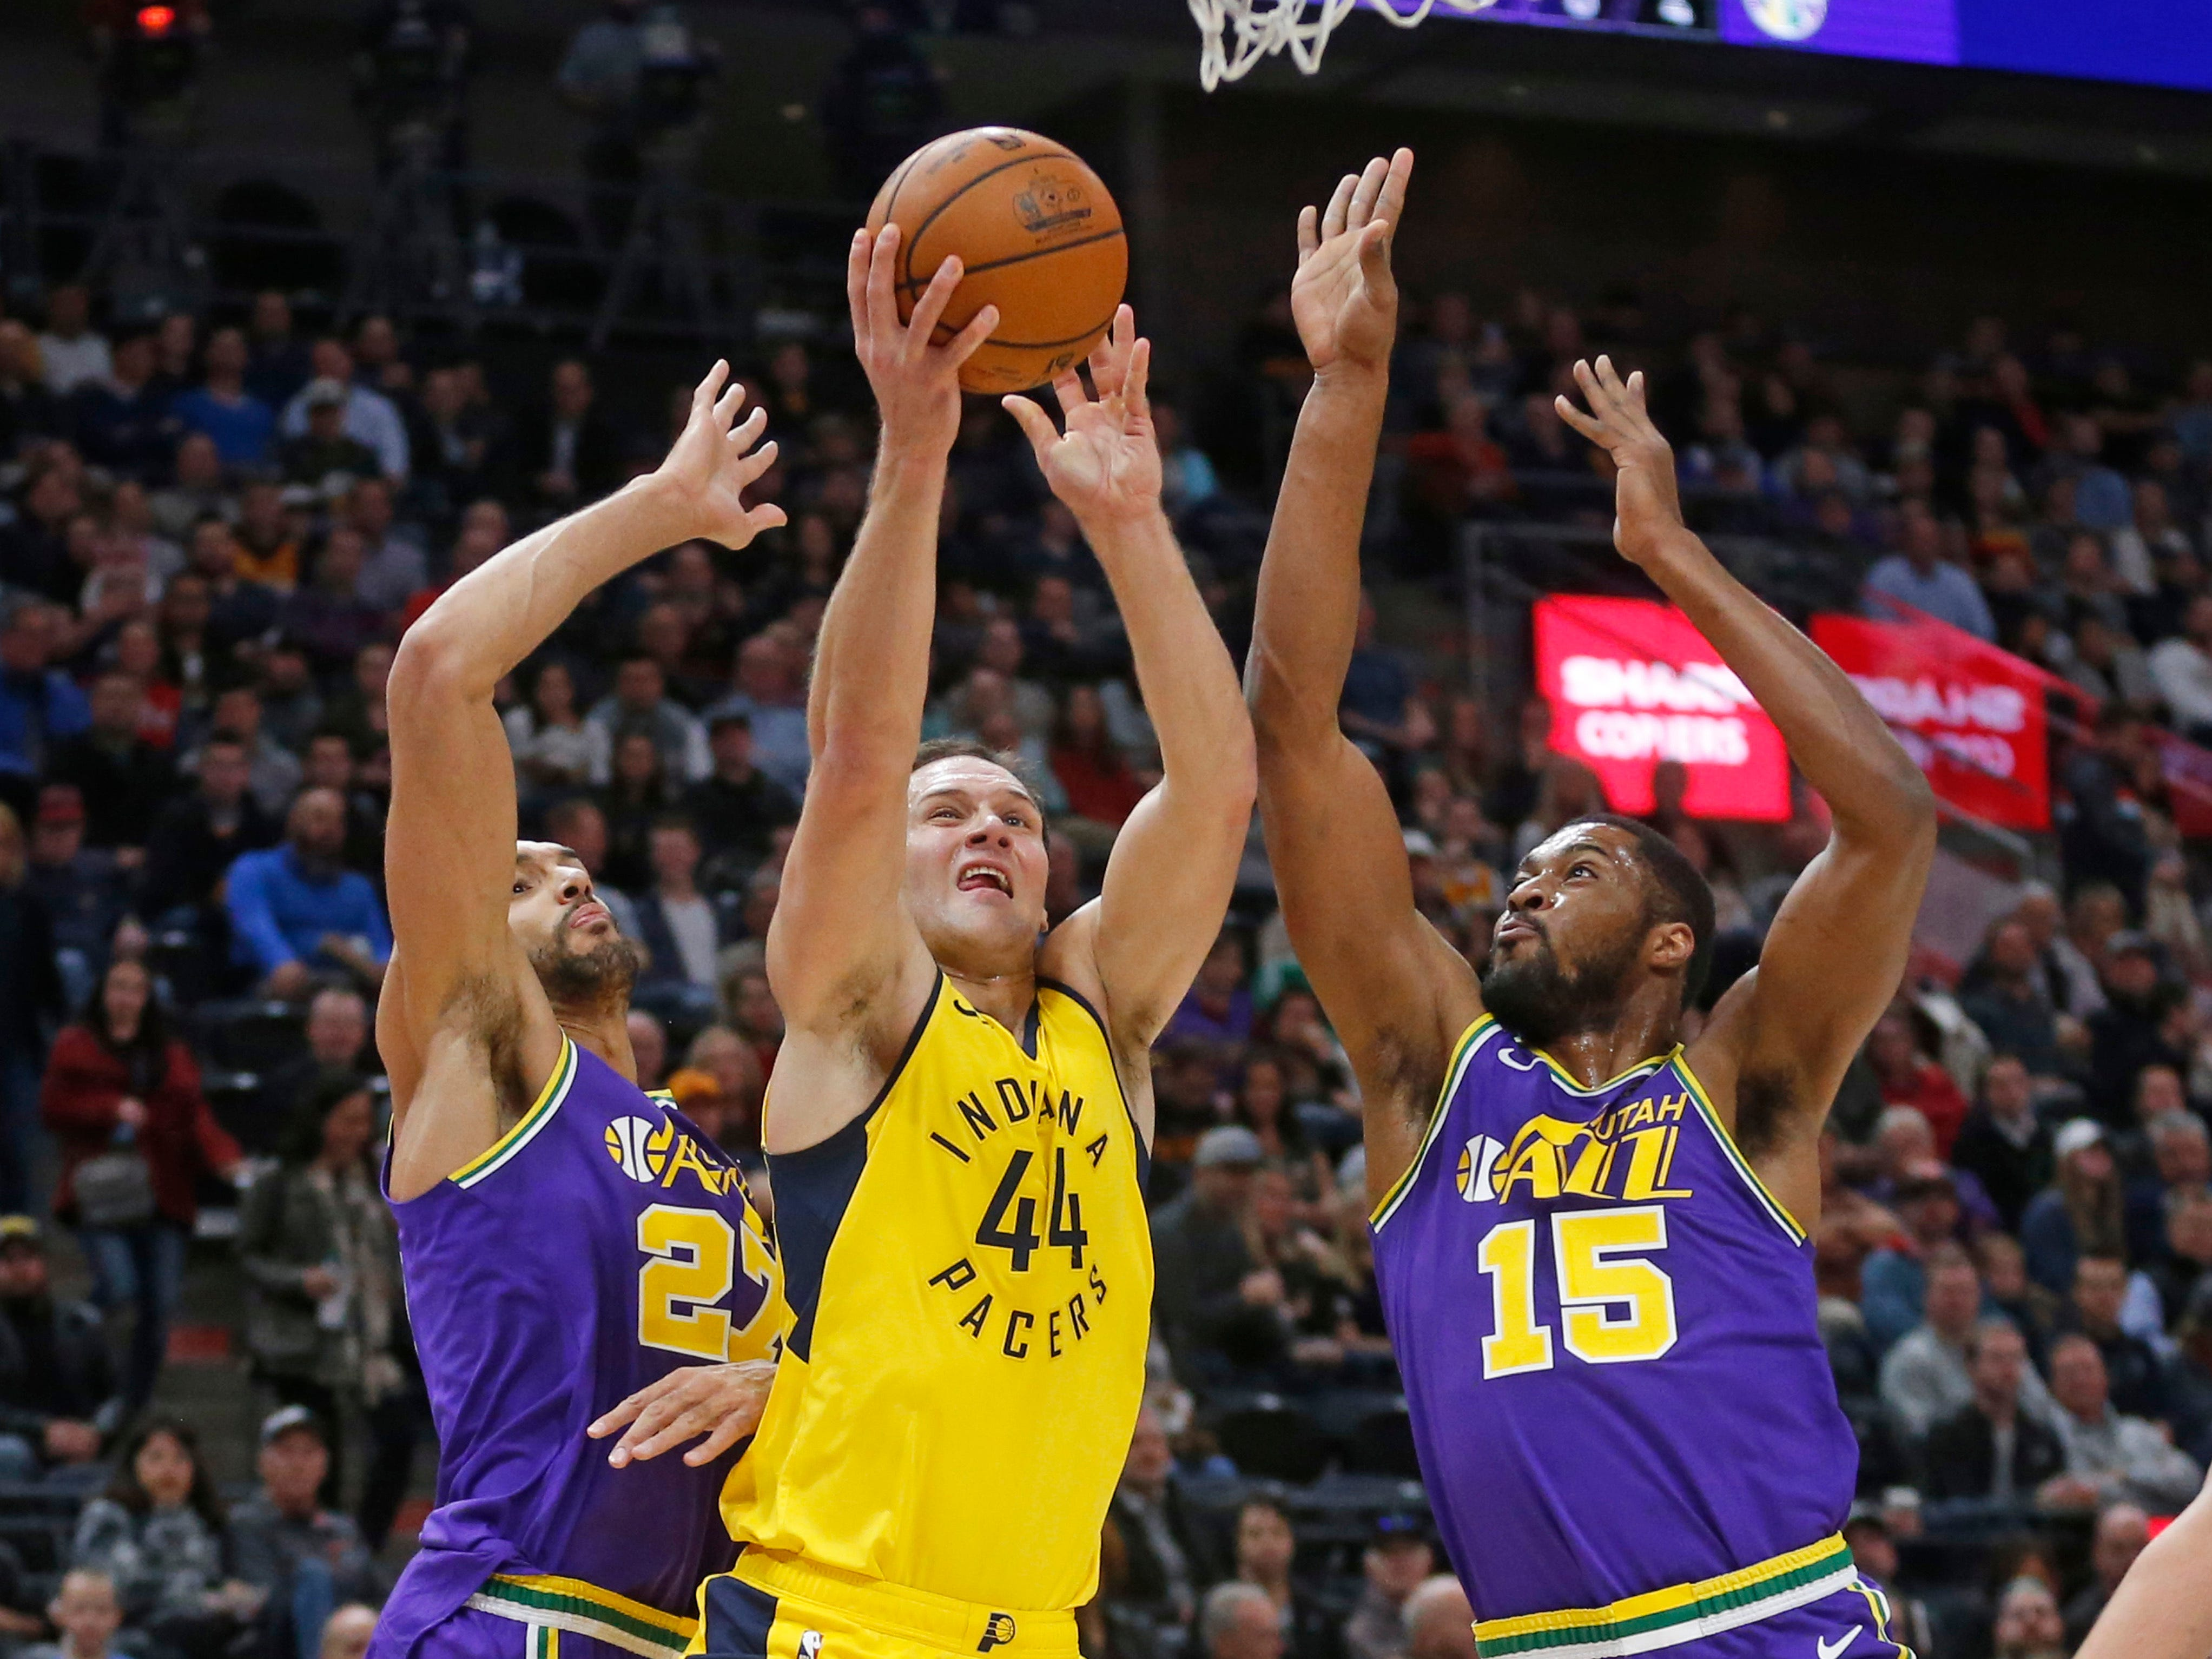 Indiana Pacers forward Bojan Bogdanovic (44) shoots as Utah Jazz's Rudy Gobert (27) and Derrick Favors (15) defend in the first half during an NBA basketball game Monday Nov. 26, 2018, in Salt Lake City.